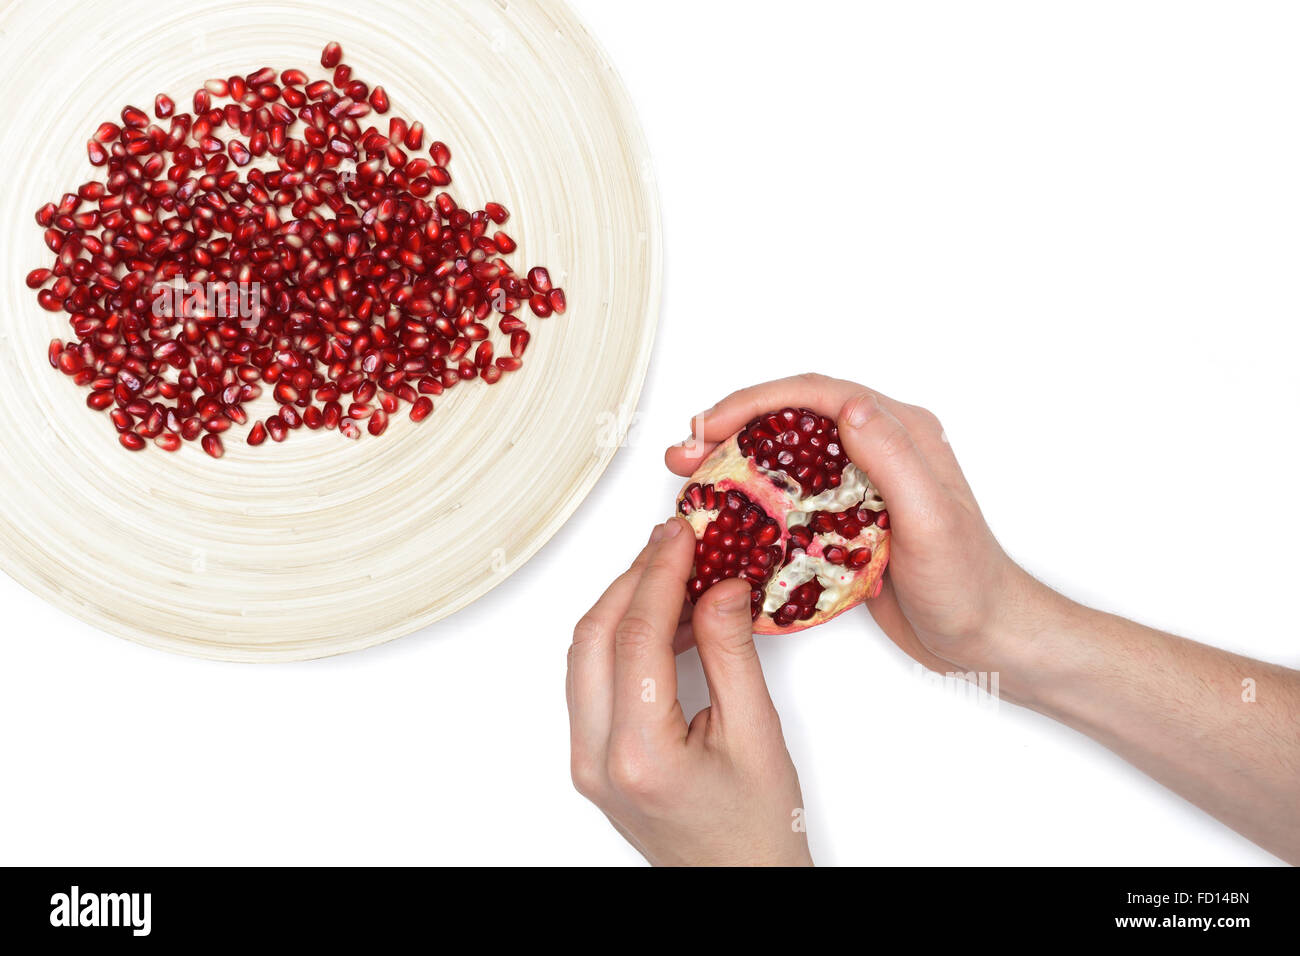 Sources Of Vitamins And Antioxidants In The Winter Food For Raw Stock Photo 94067785 Alamy